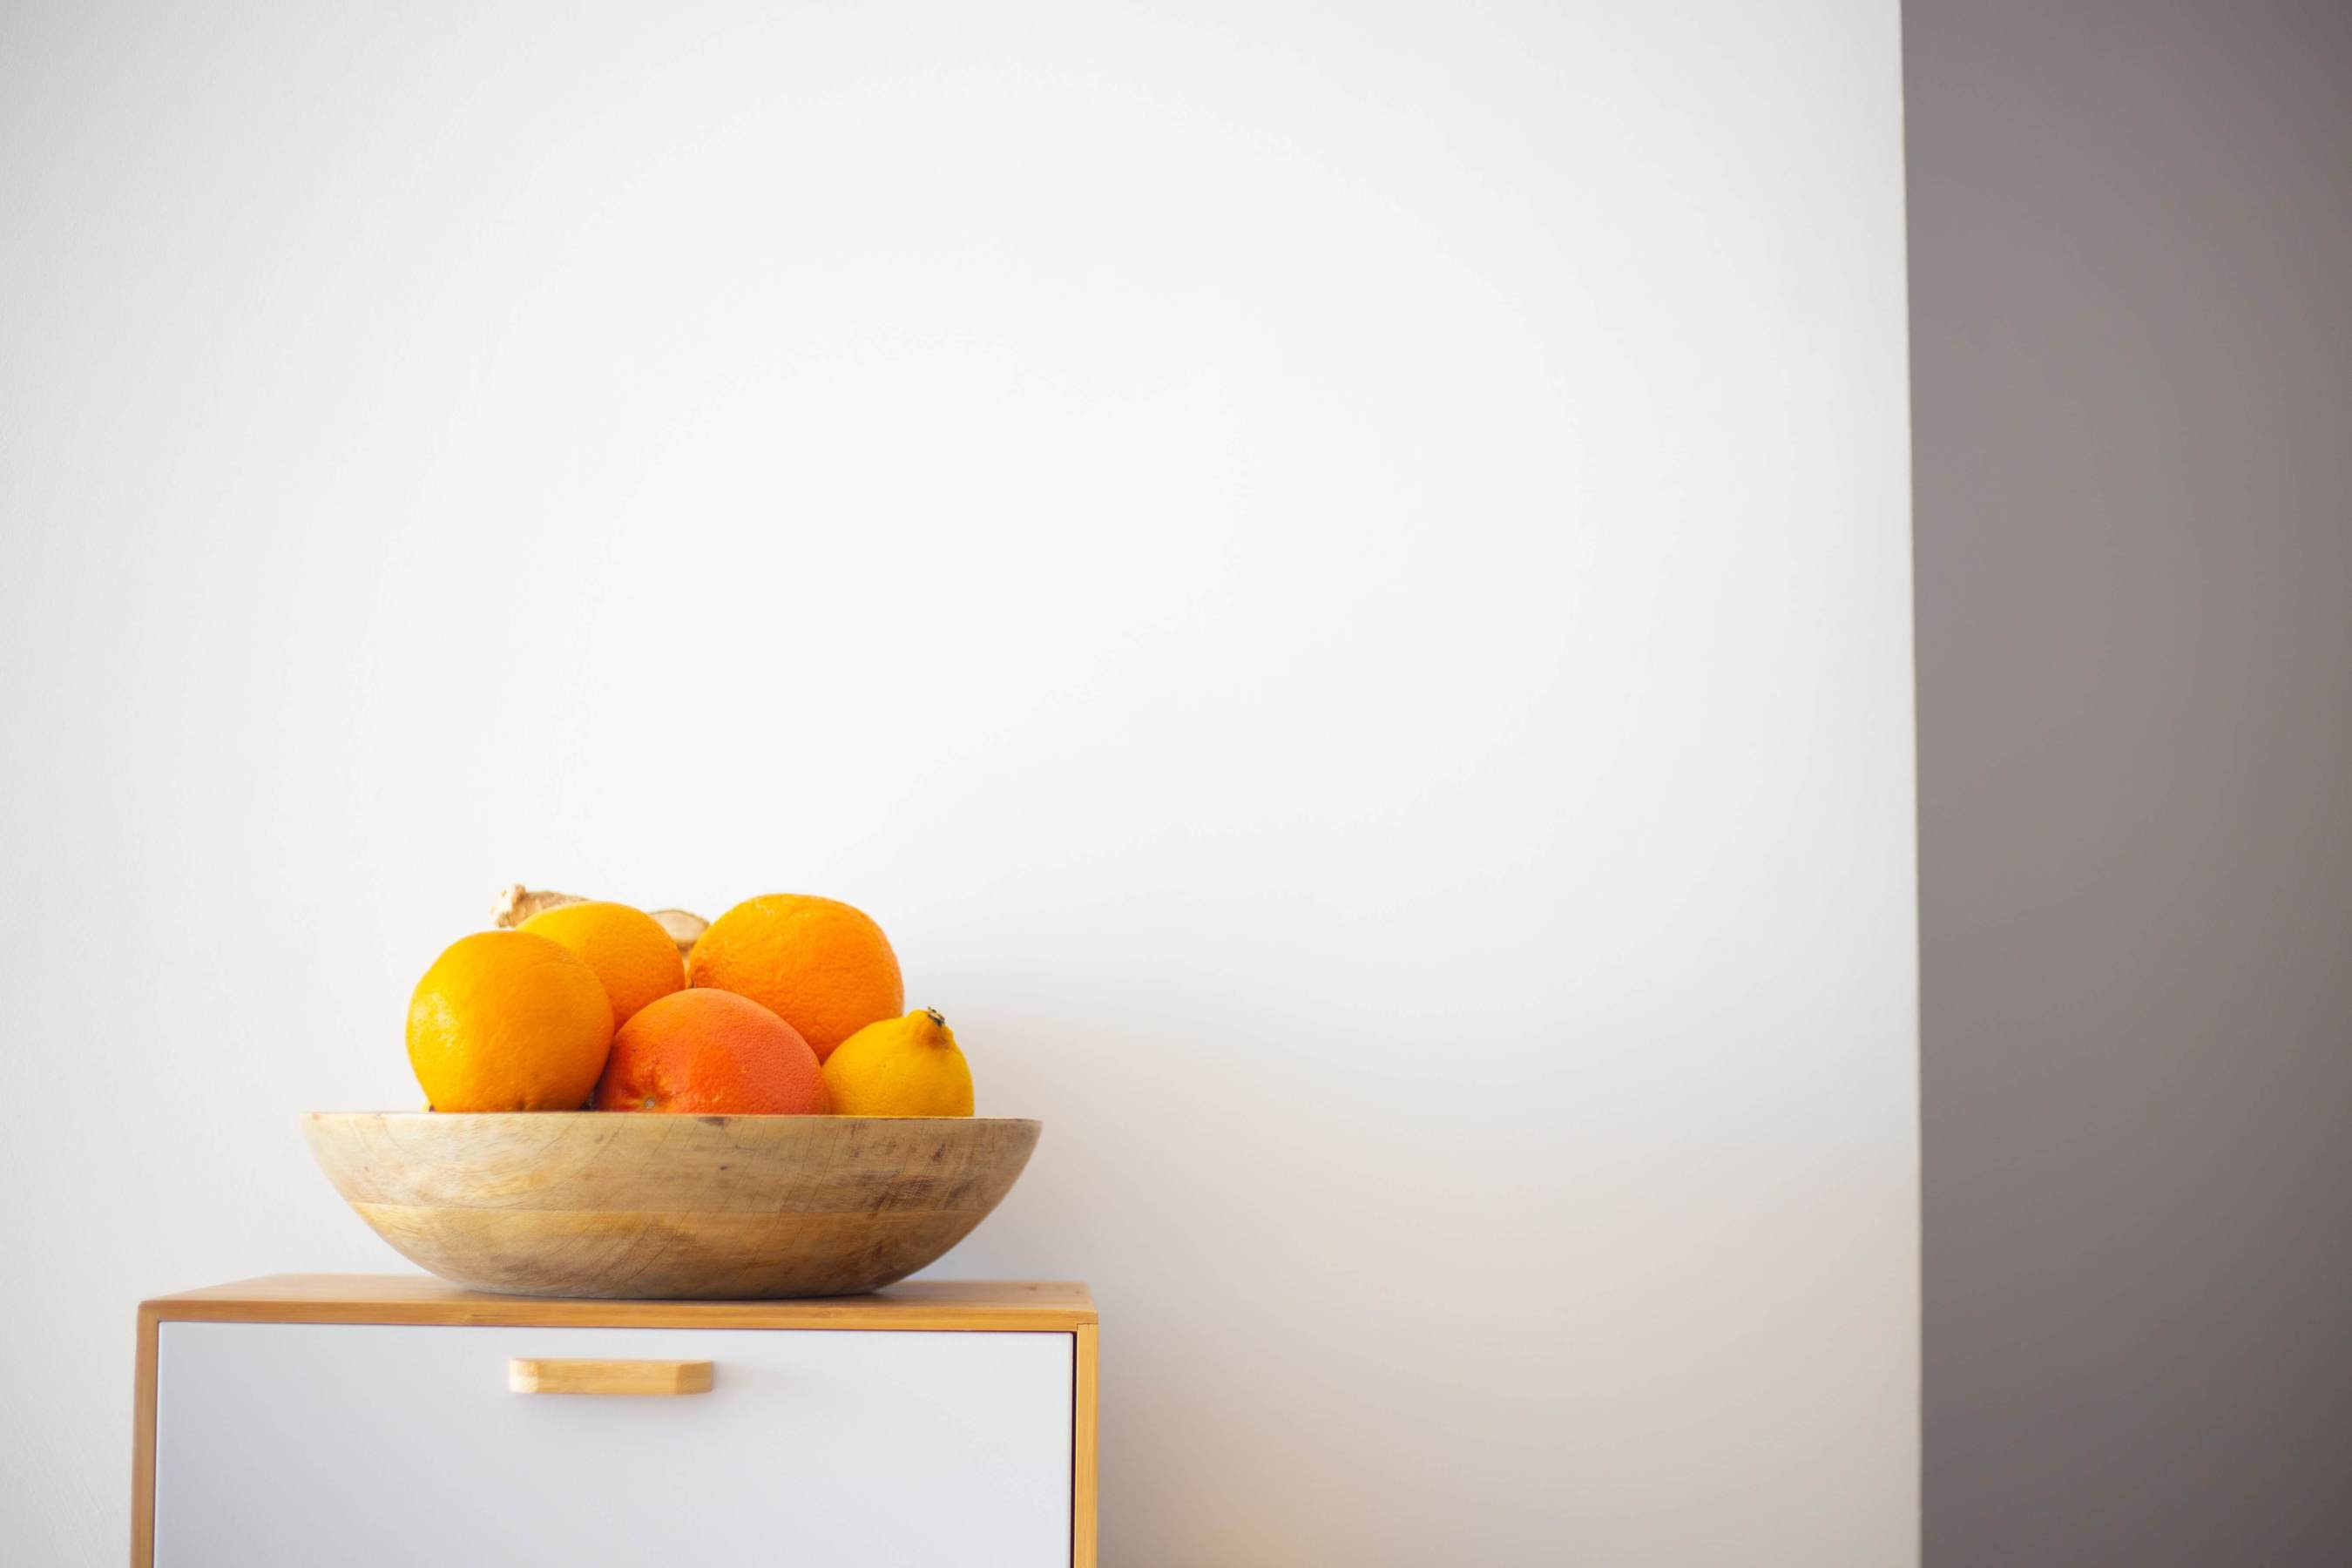 A bowl of oranges and lemons